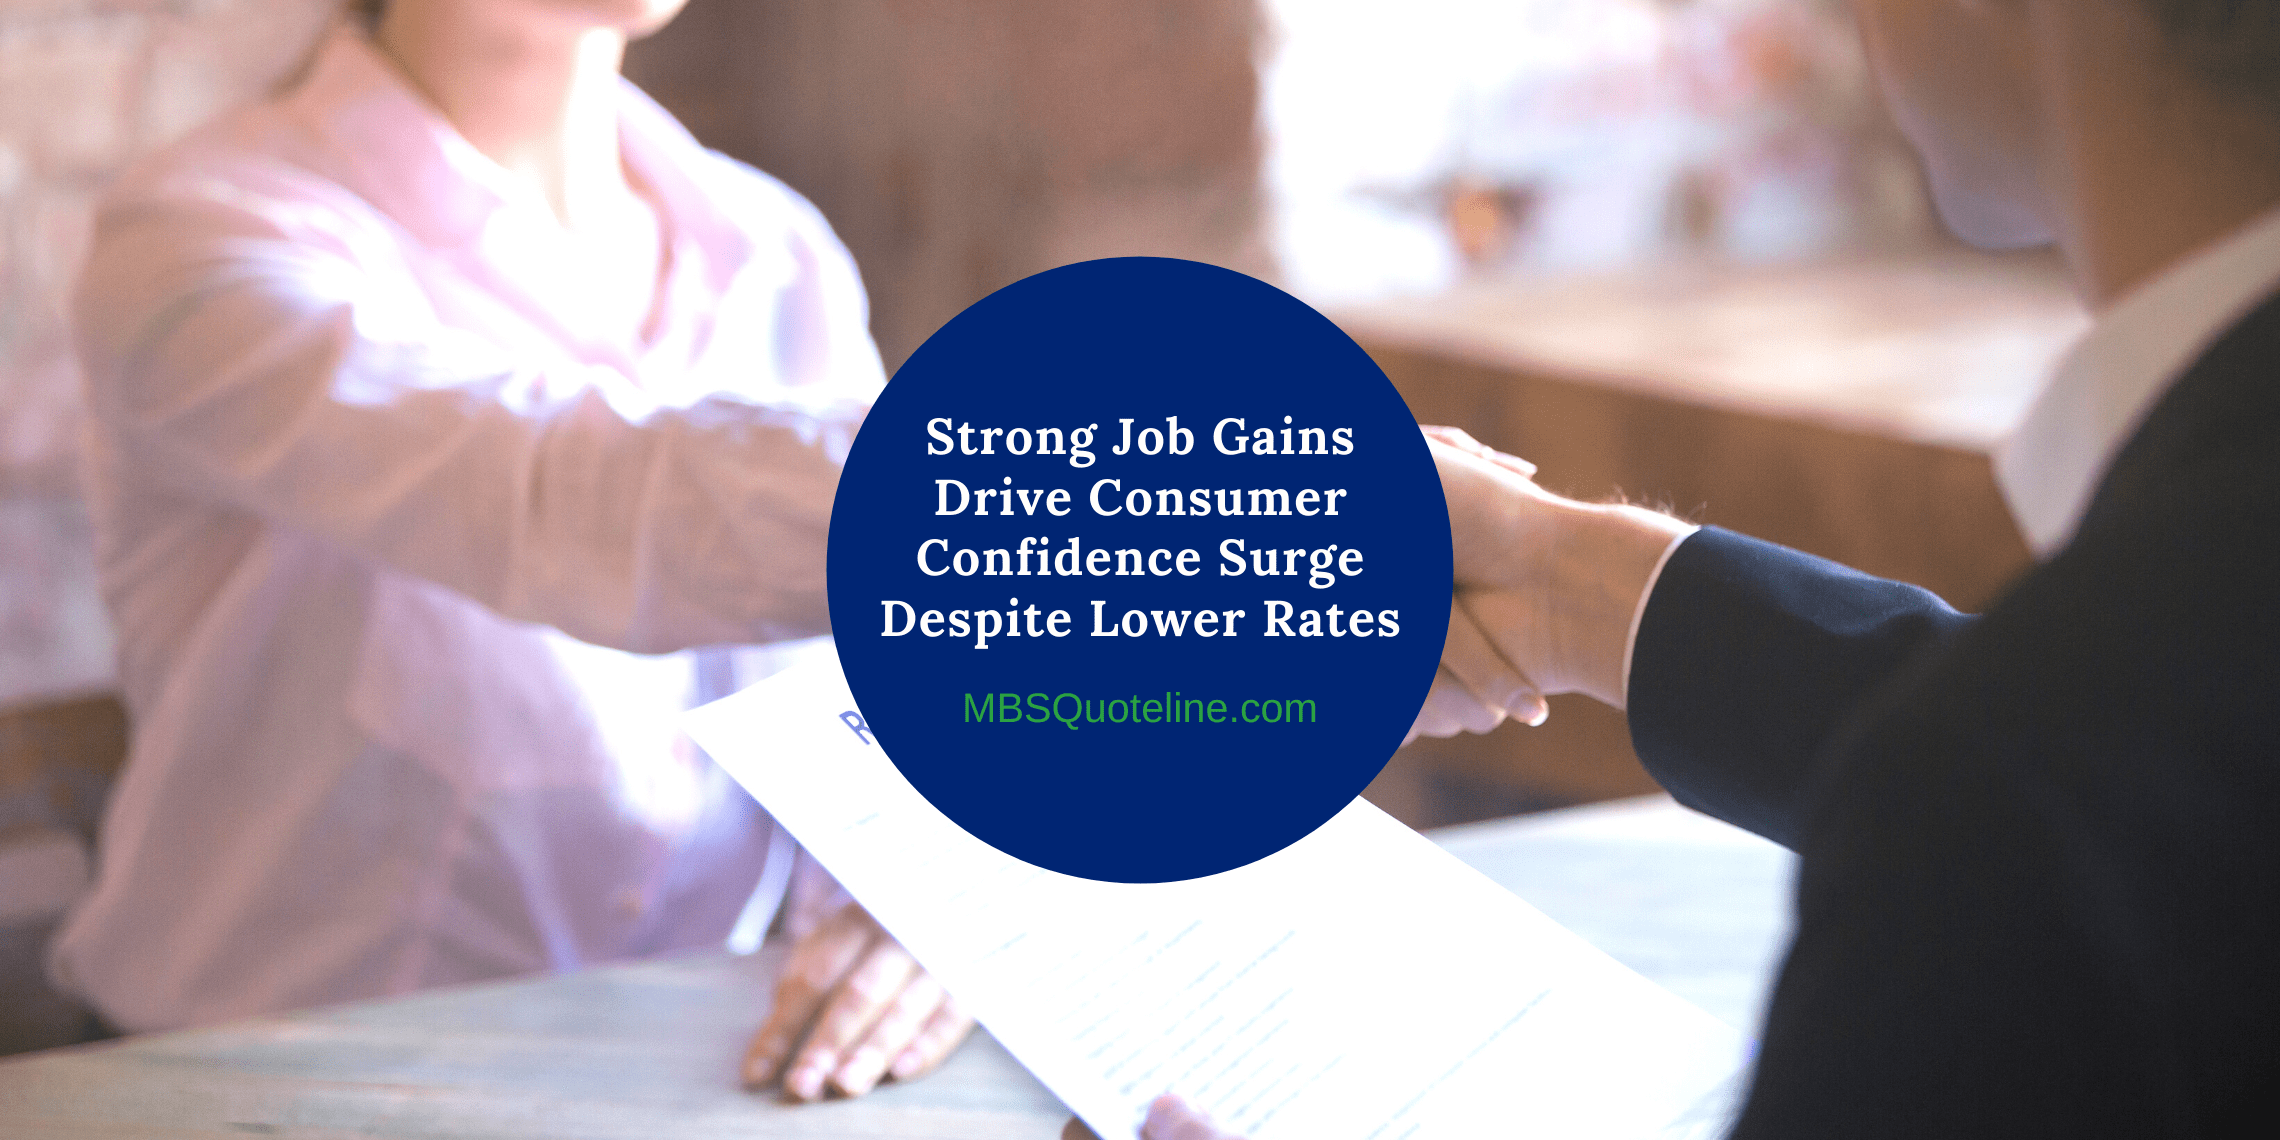 Strong Job Gains Drive Consumer Confidence Surge Despite Lower Rates mortgagetime mbsquoteline